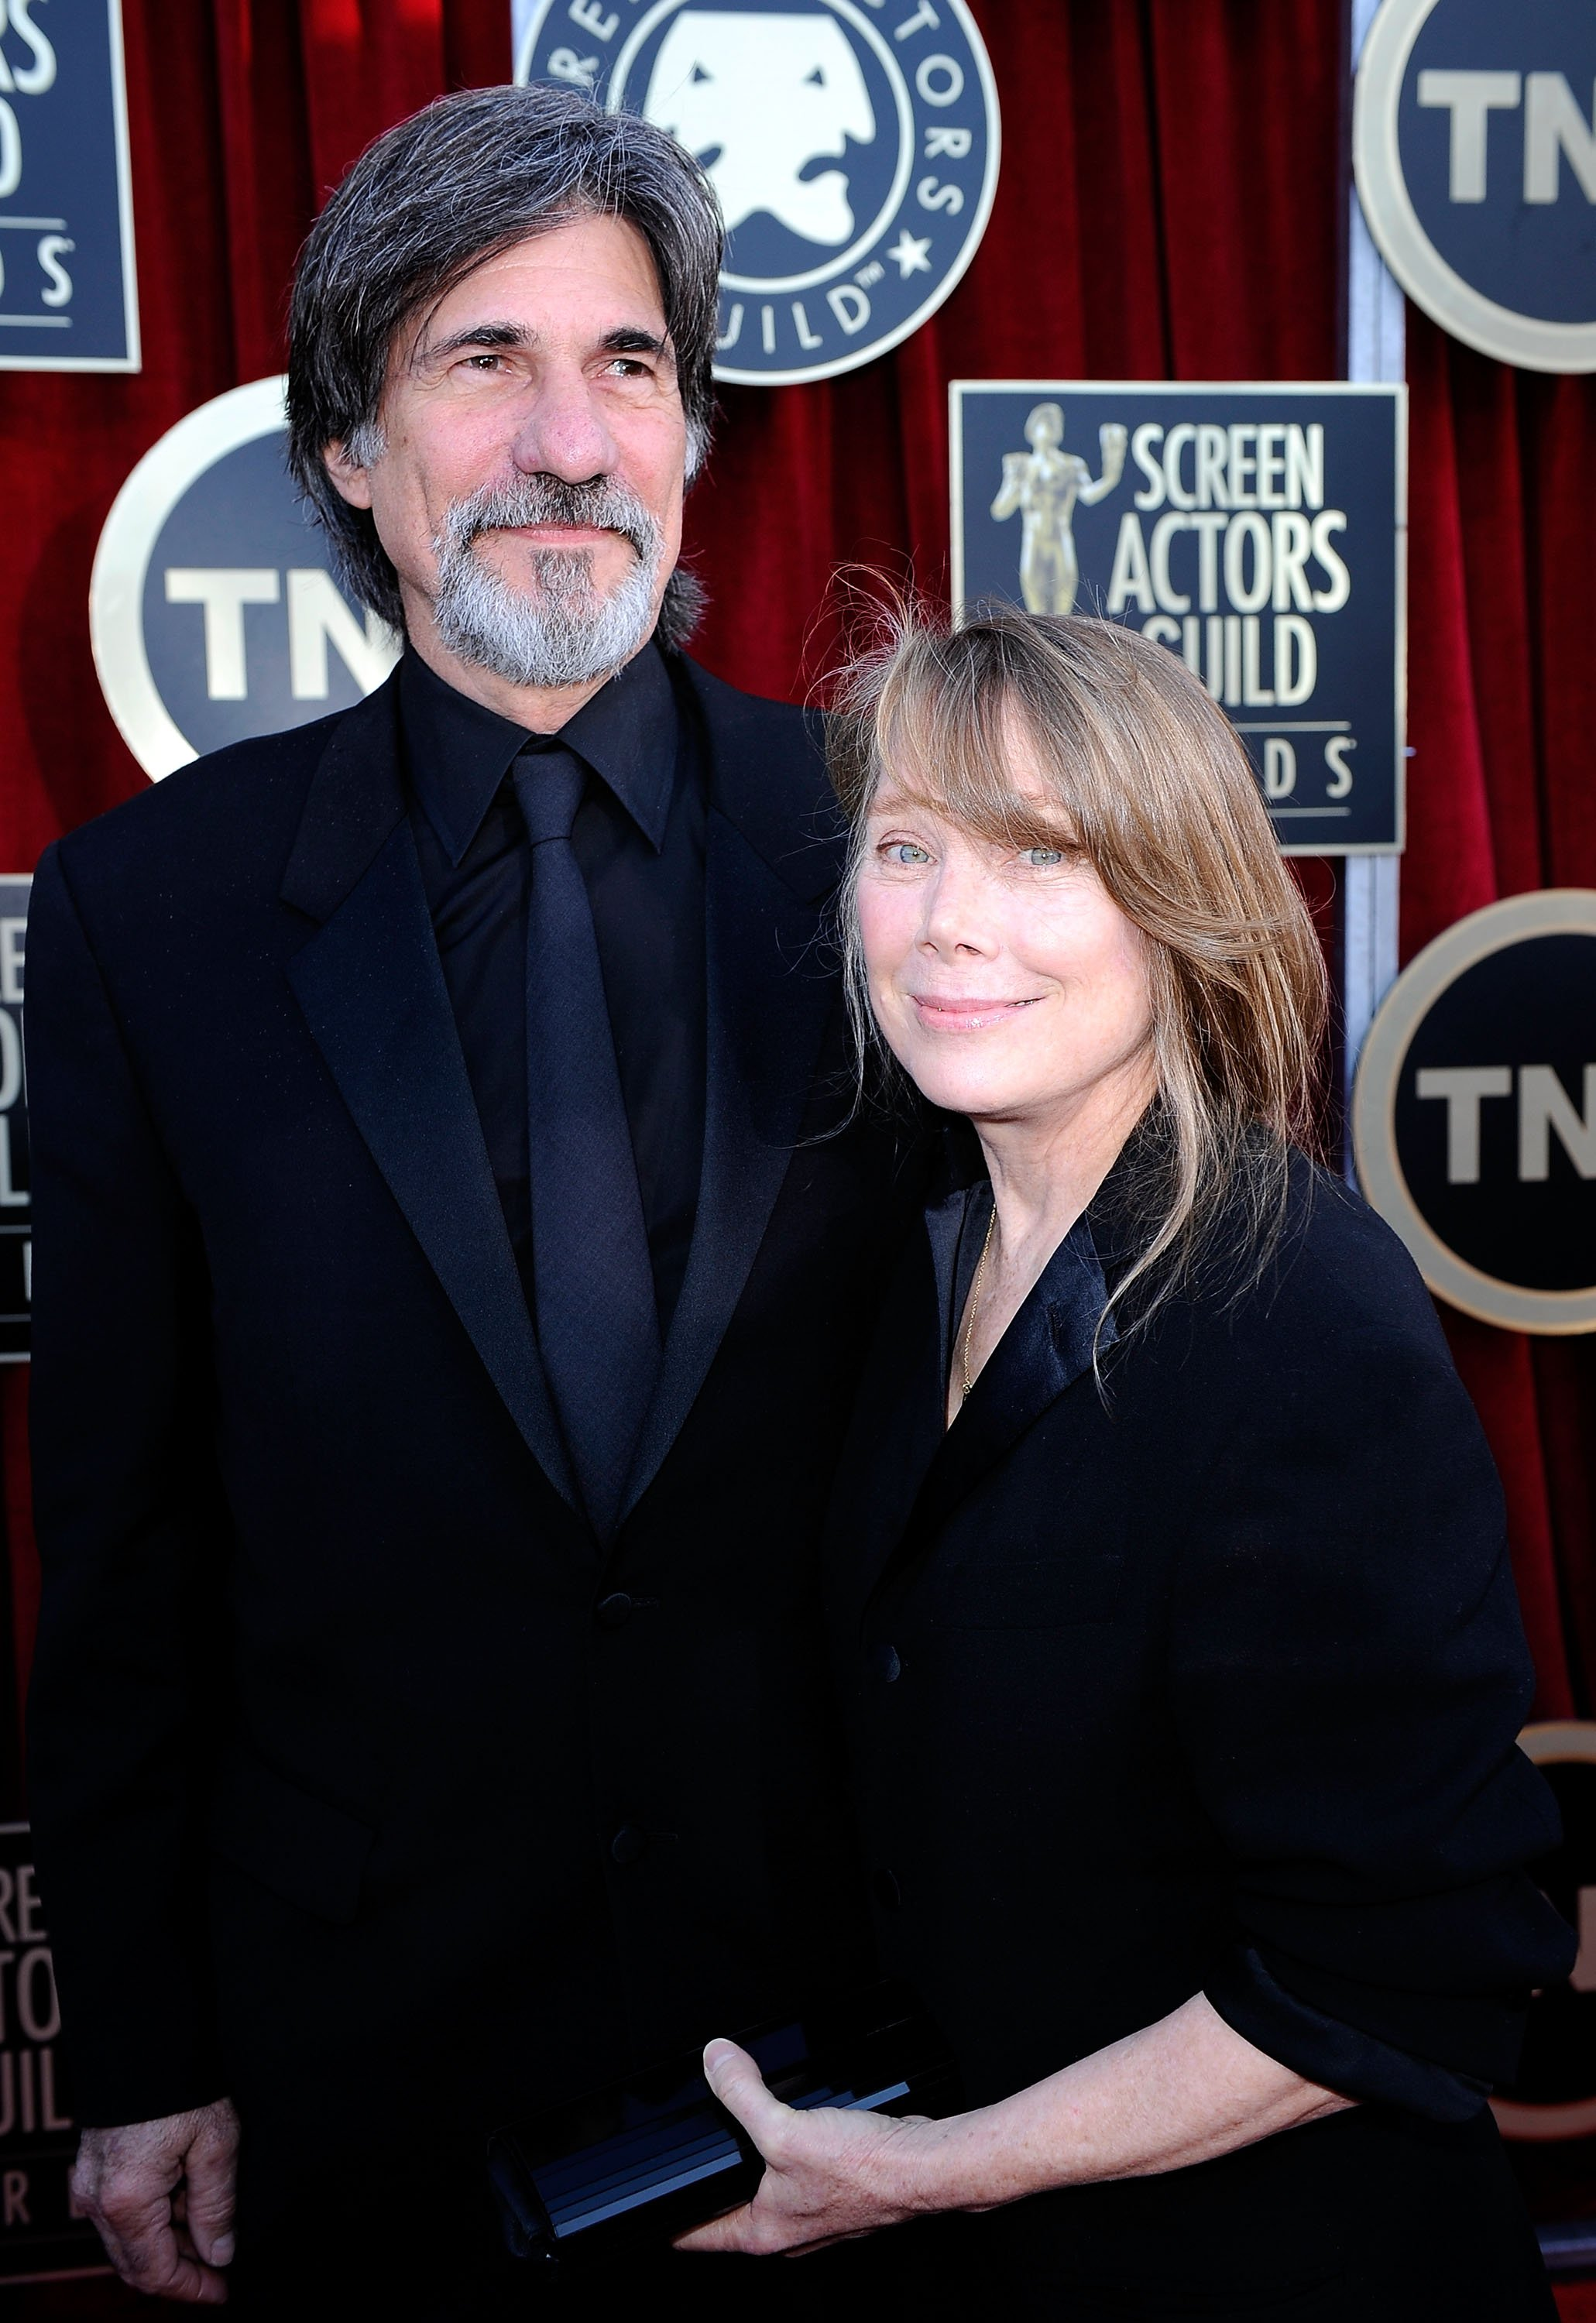 Sissy Spacek and Jack Fisk arrive at the 18th Annual Screen Actors Guild Awards at The Shrine Auditorium on January 29, 2012, in Los Angeles, California. | Source: Getty Images.